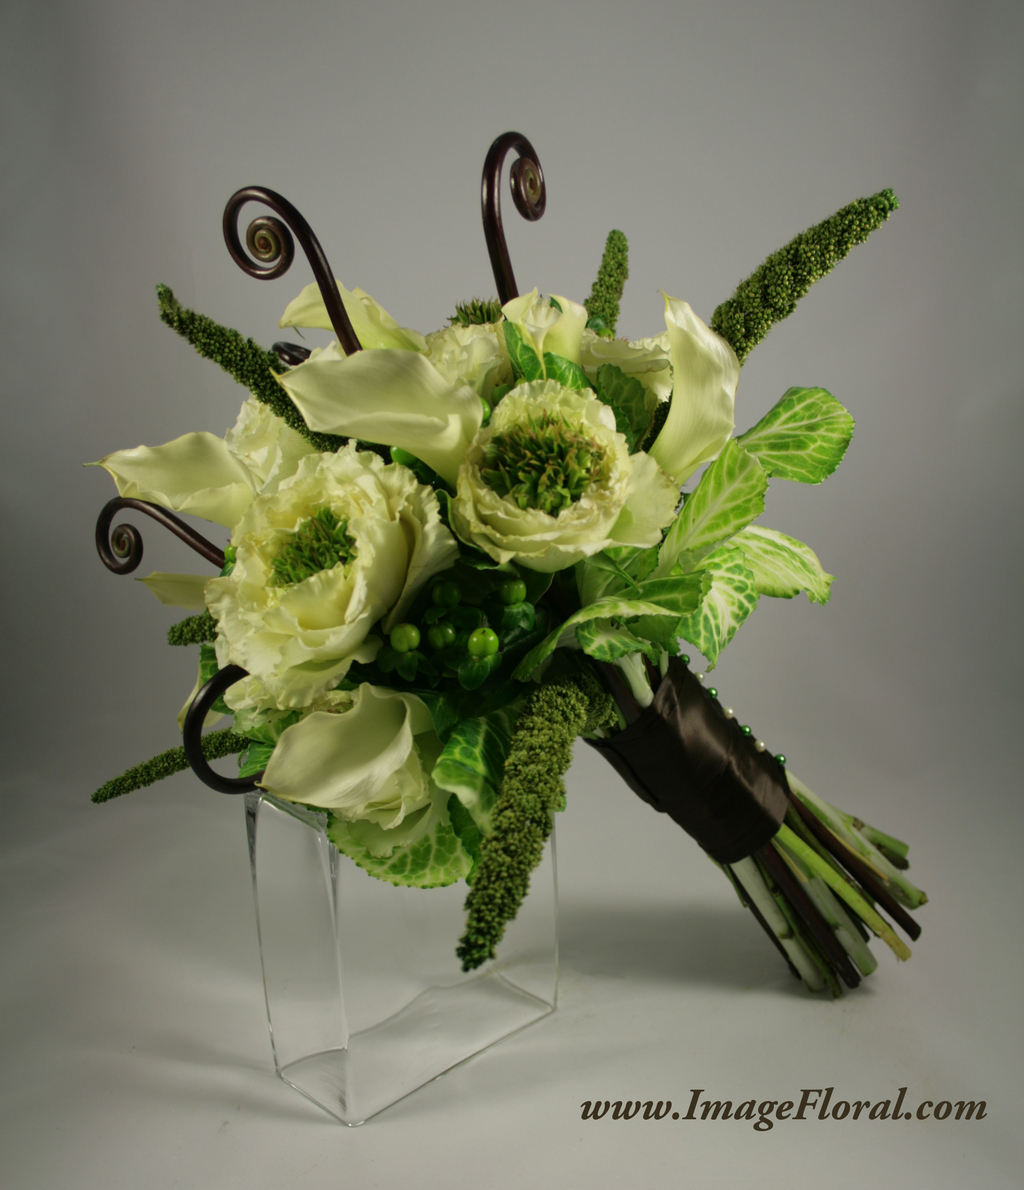 Green%20ivory%20brown%20callas%20kale%20roses%20berries%20fern%20curls%20bouquet.full